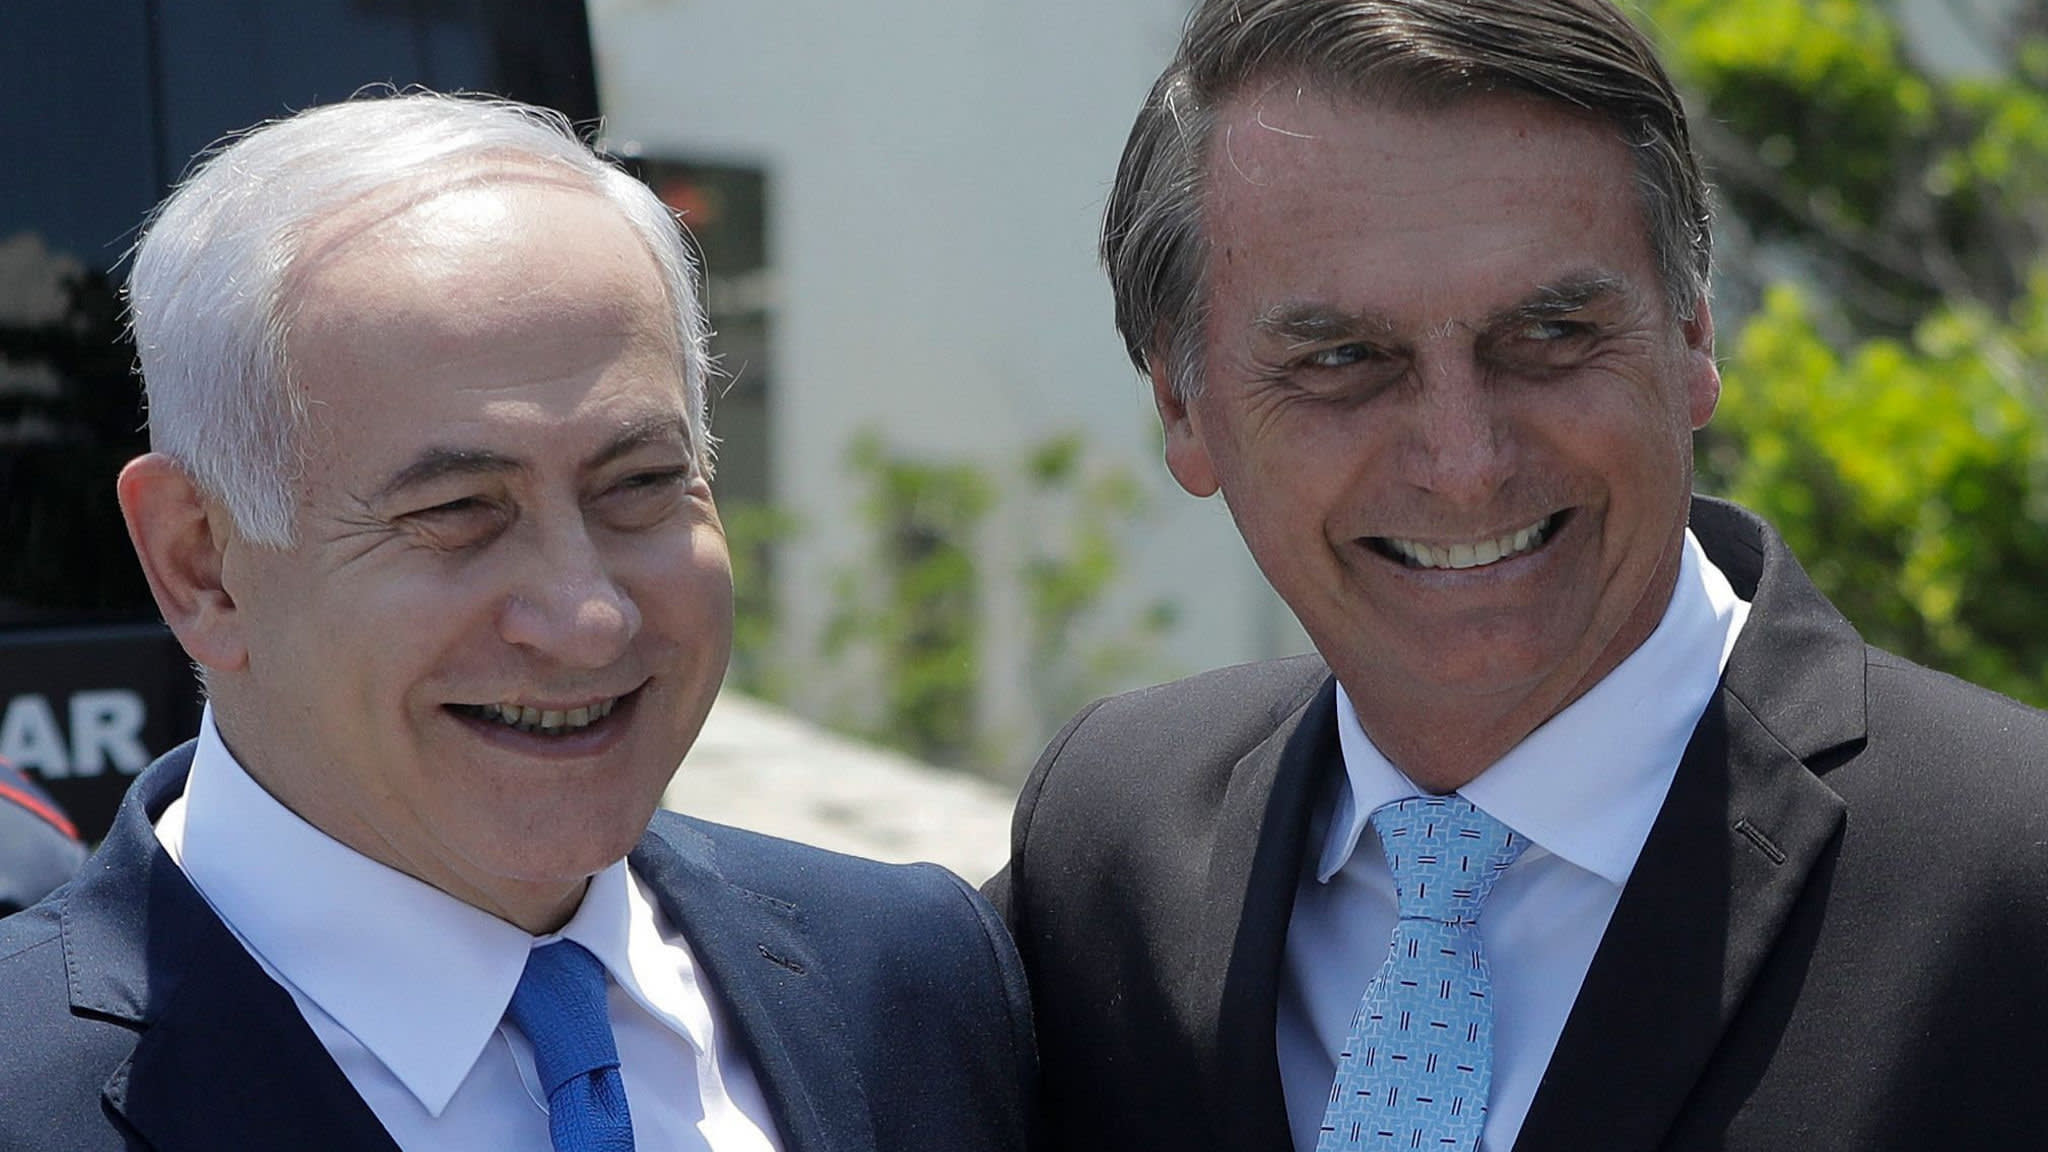 Brazil risks halal meat exports with Israel embassy move